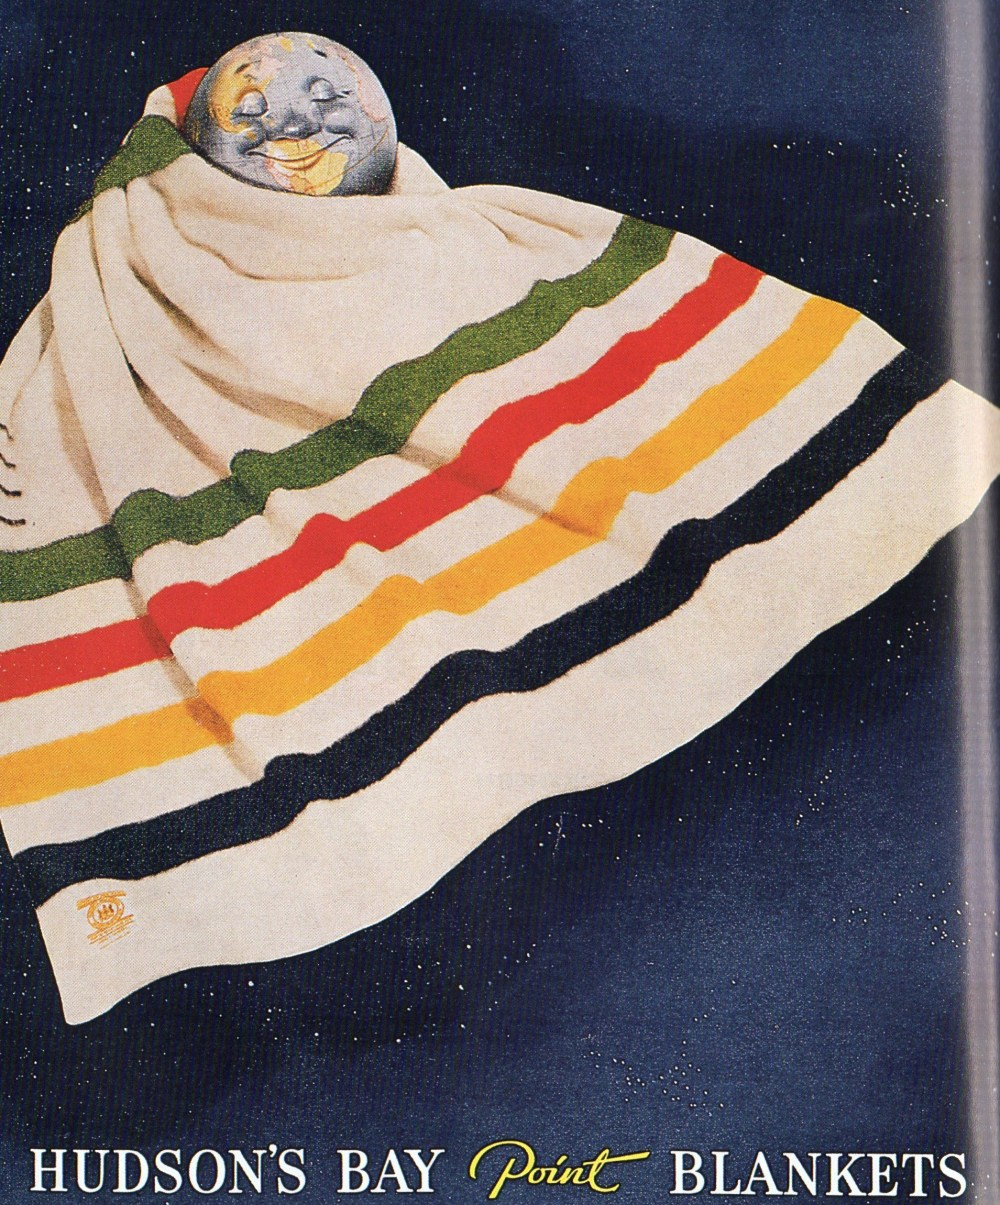 Hudson's Bay Point Blanket Add with Earth